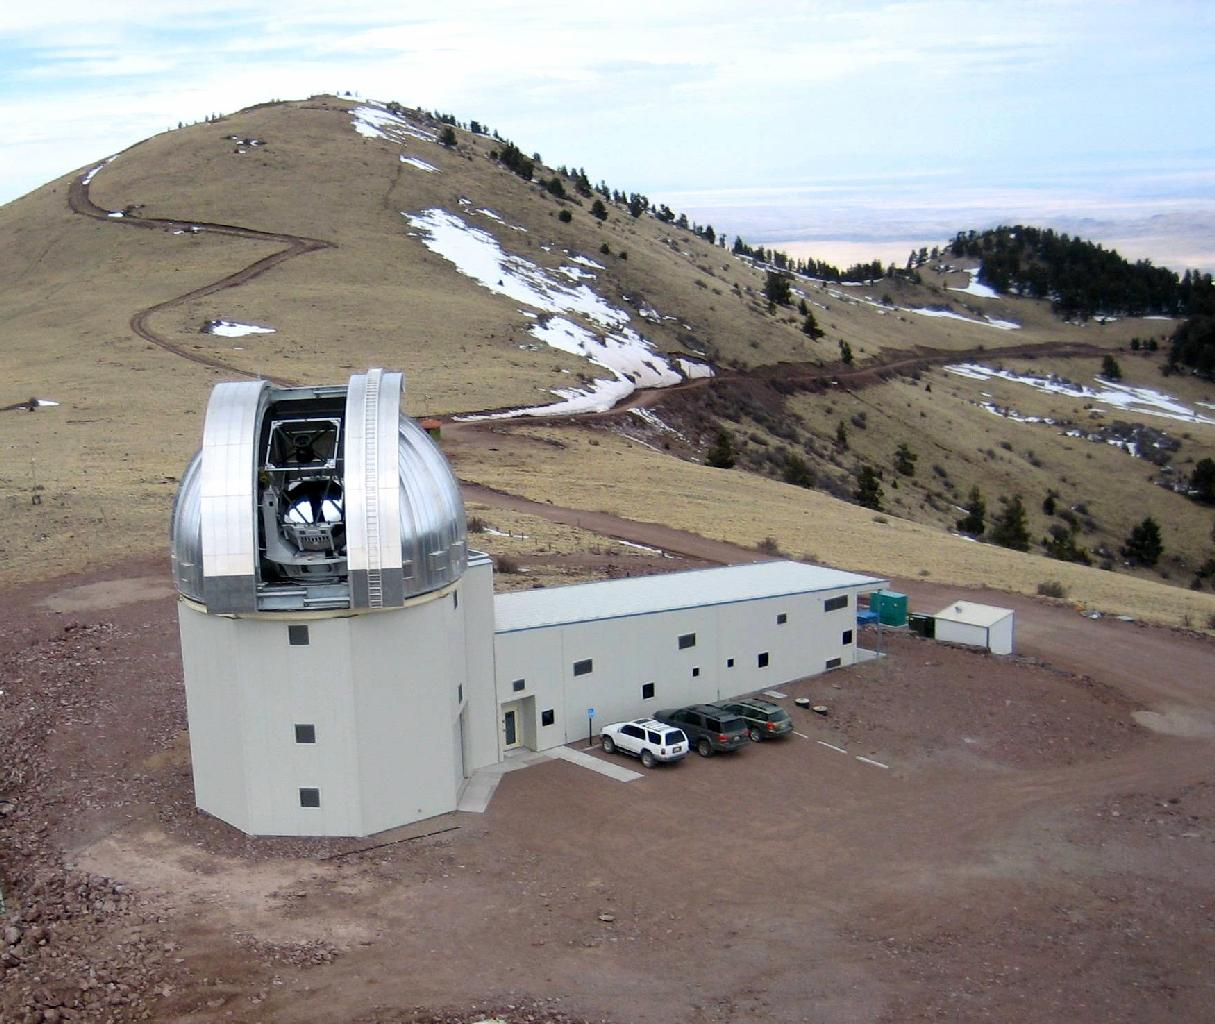 New mexico socorro county magdalena - The New Mexico Institute Of Mining And Technology S 2 4 Meter 7 9 Foot Magdalena Ridge Observatory In Socorro County N M